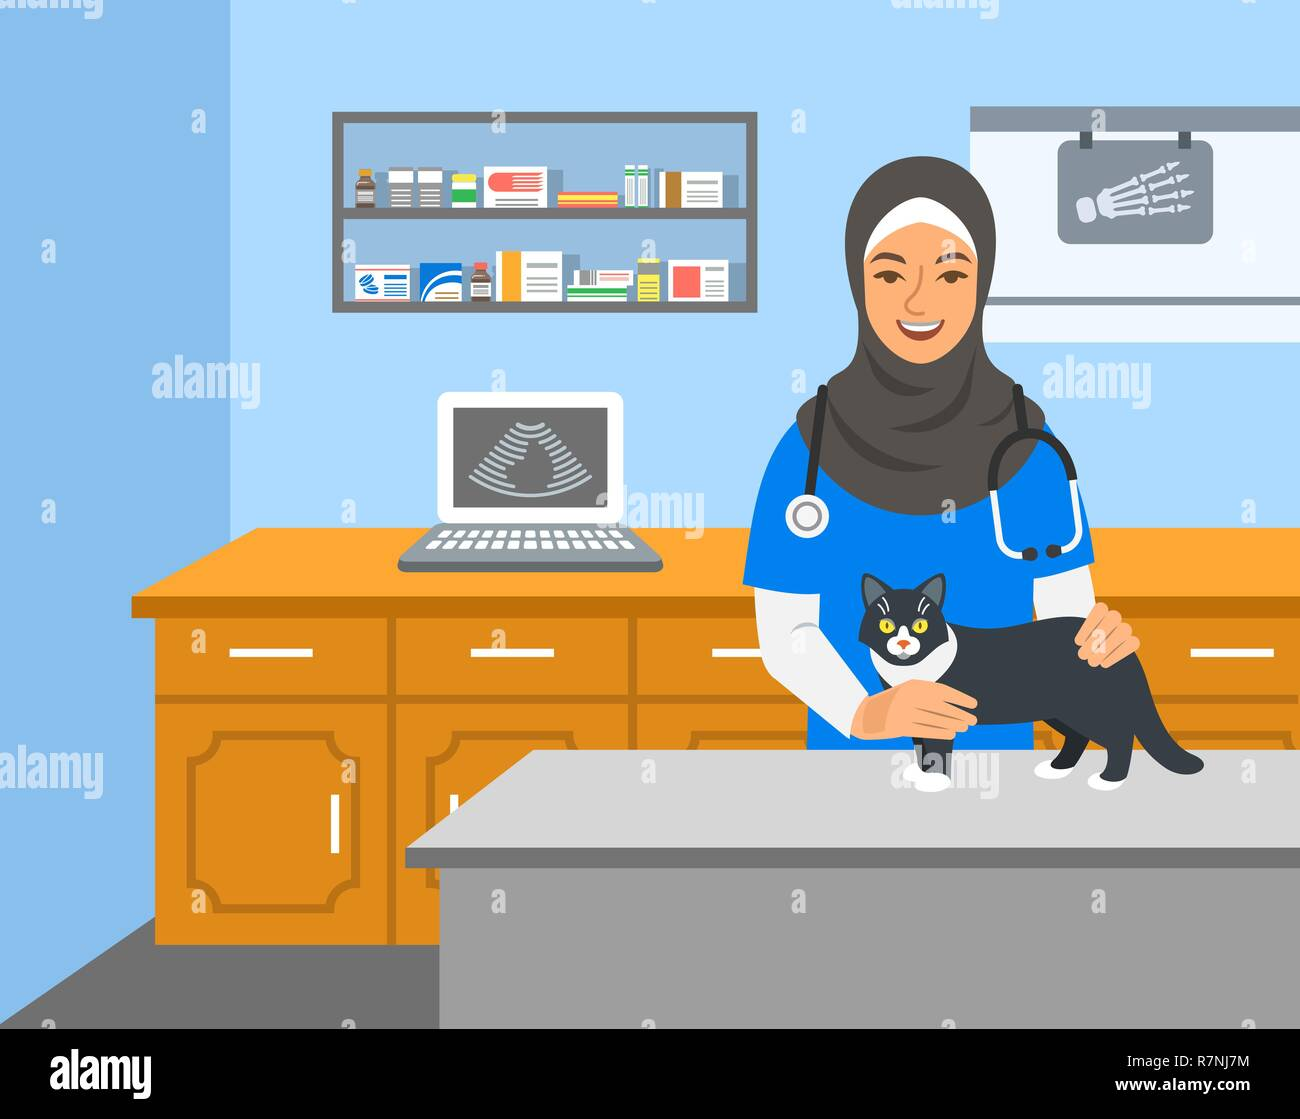 Veterinarian doctor arab woman holds cat on examination table in vet clinic. Vector cartoon illustration. Pets health care background. Domestic animal - Stock Vector